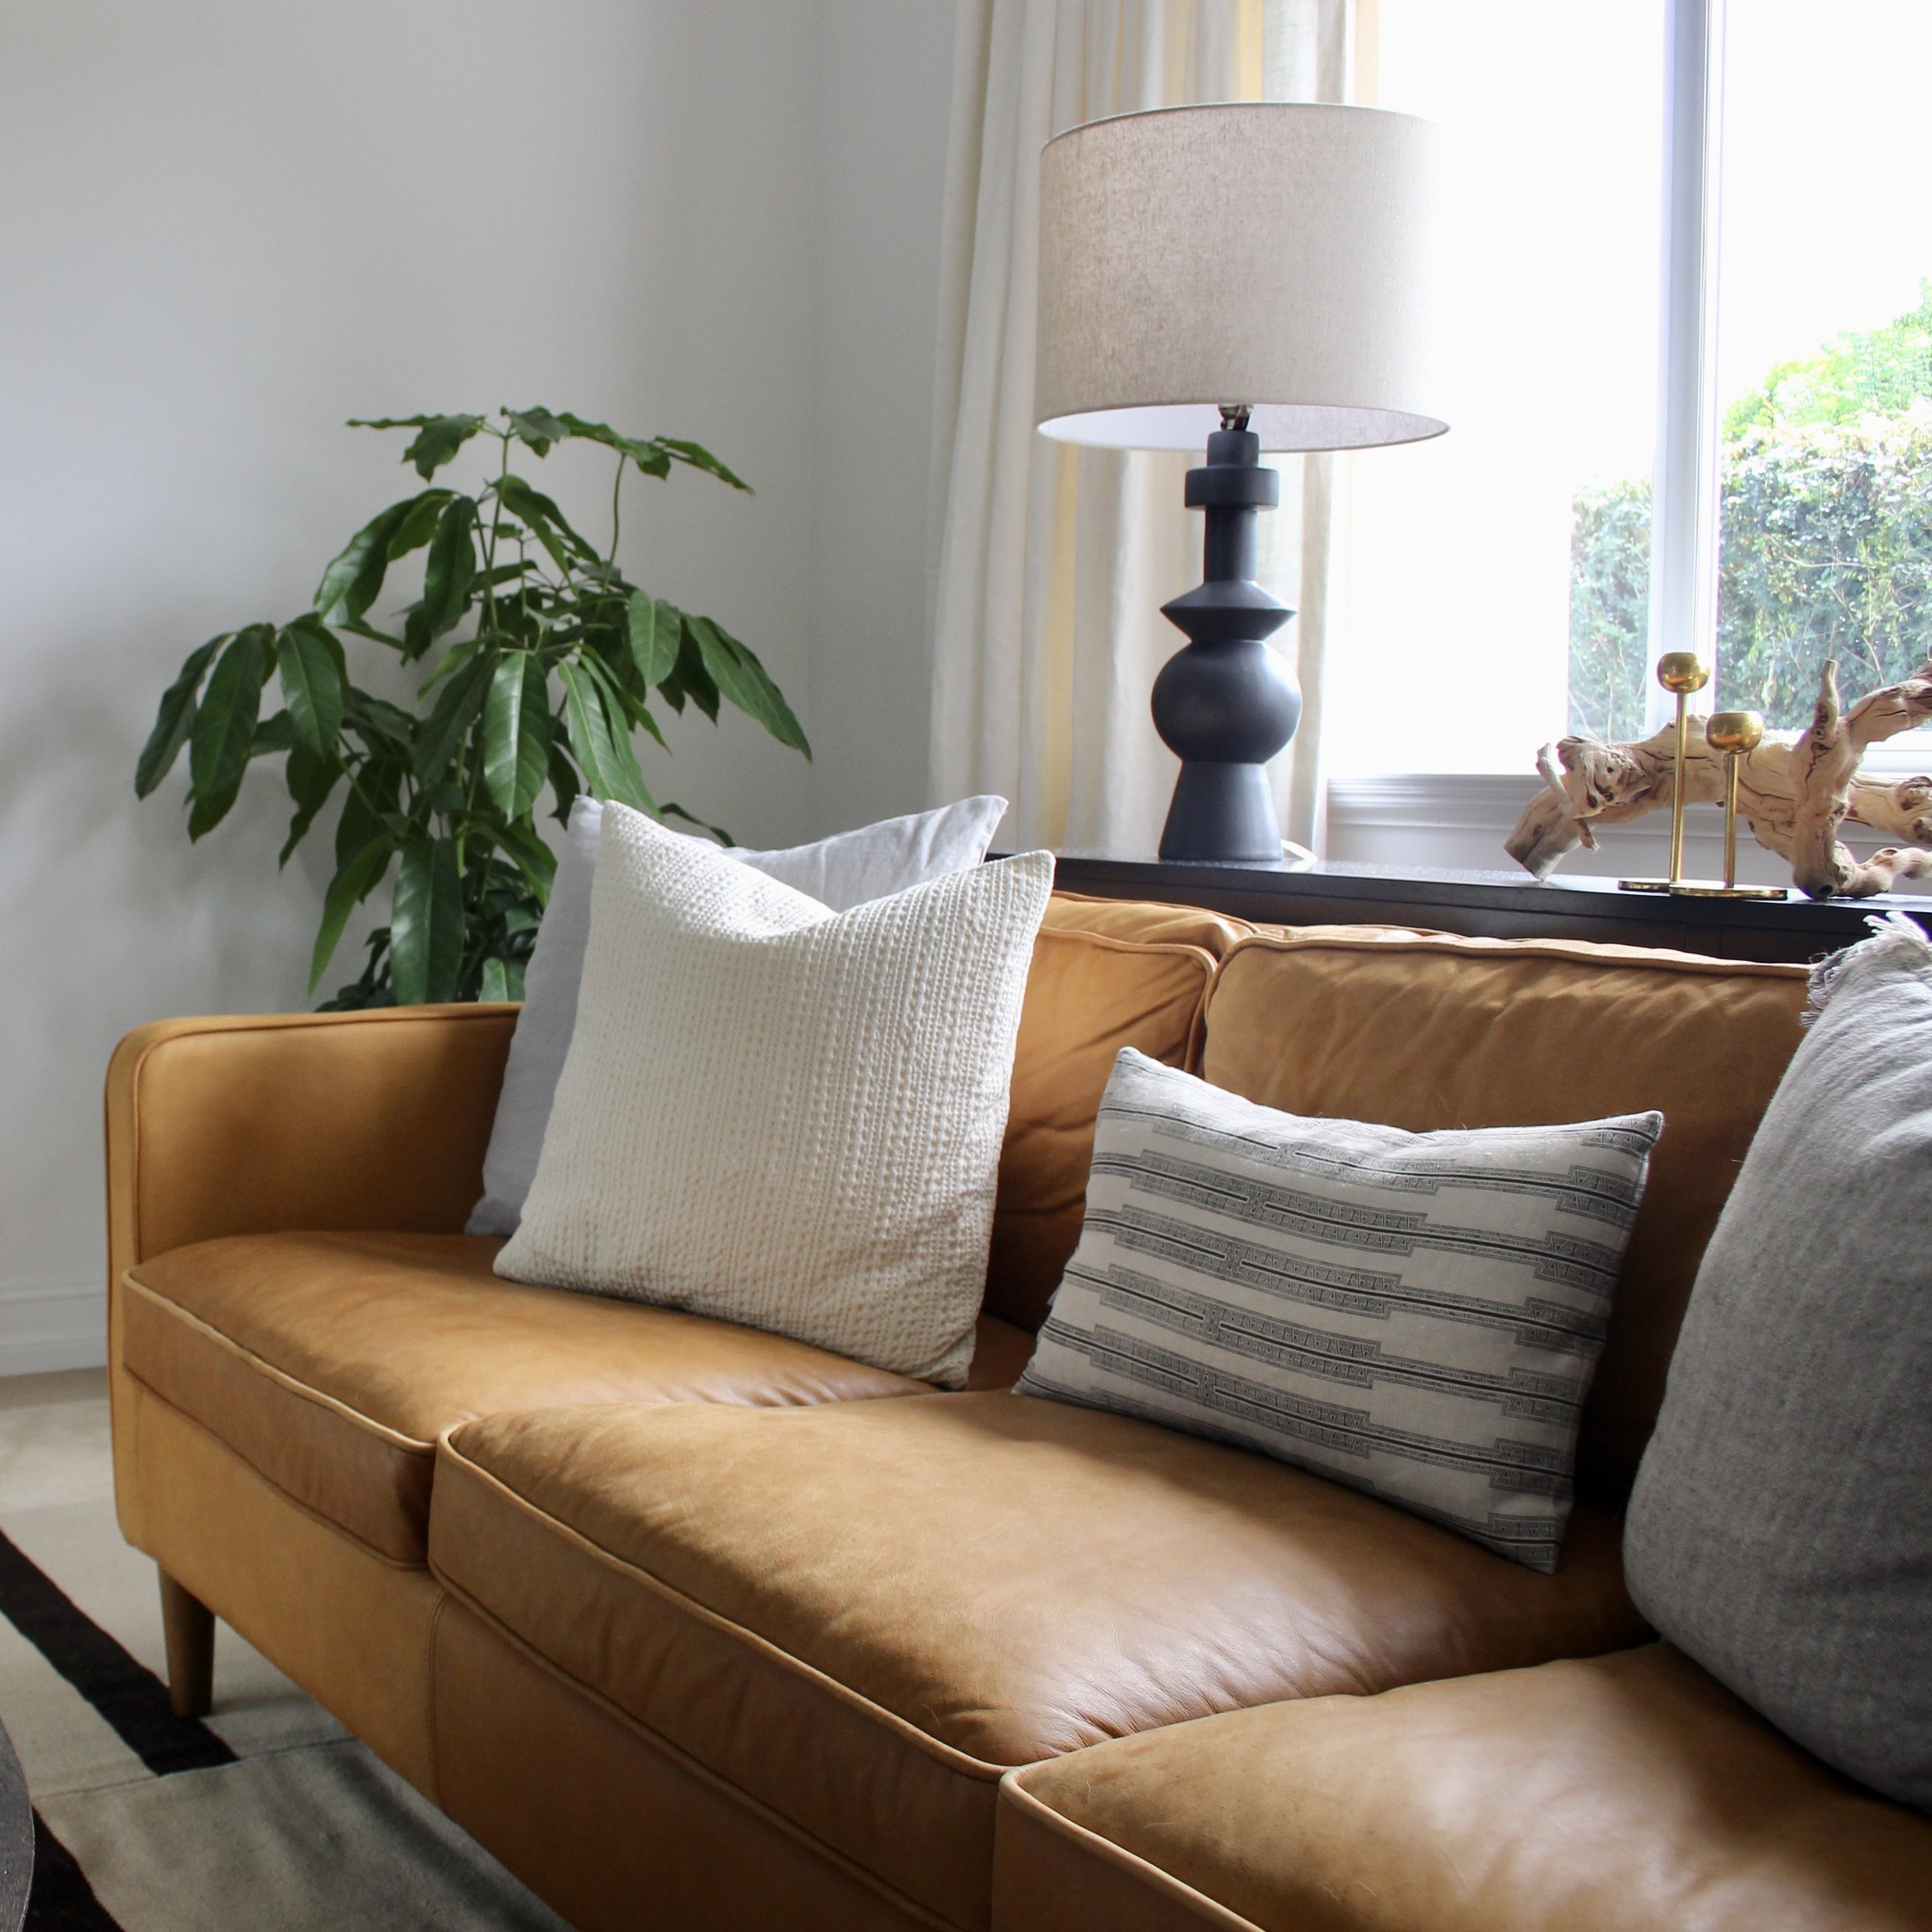 project palmetto bay eclectic